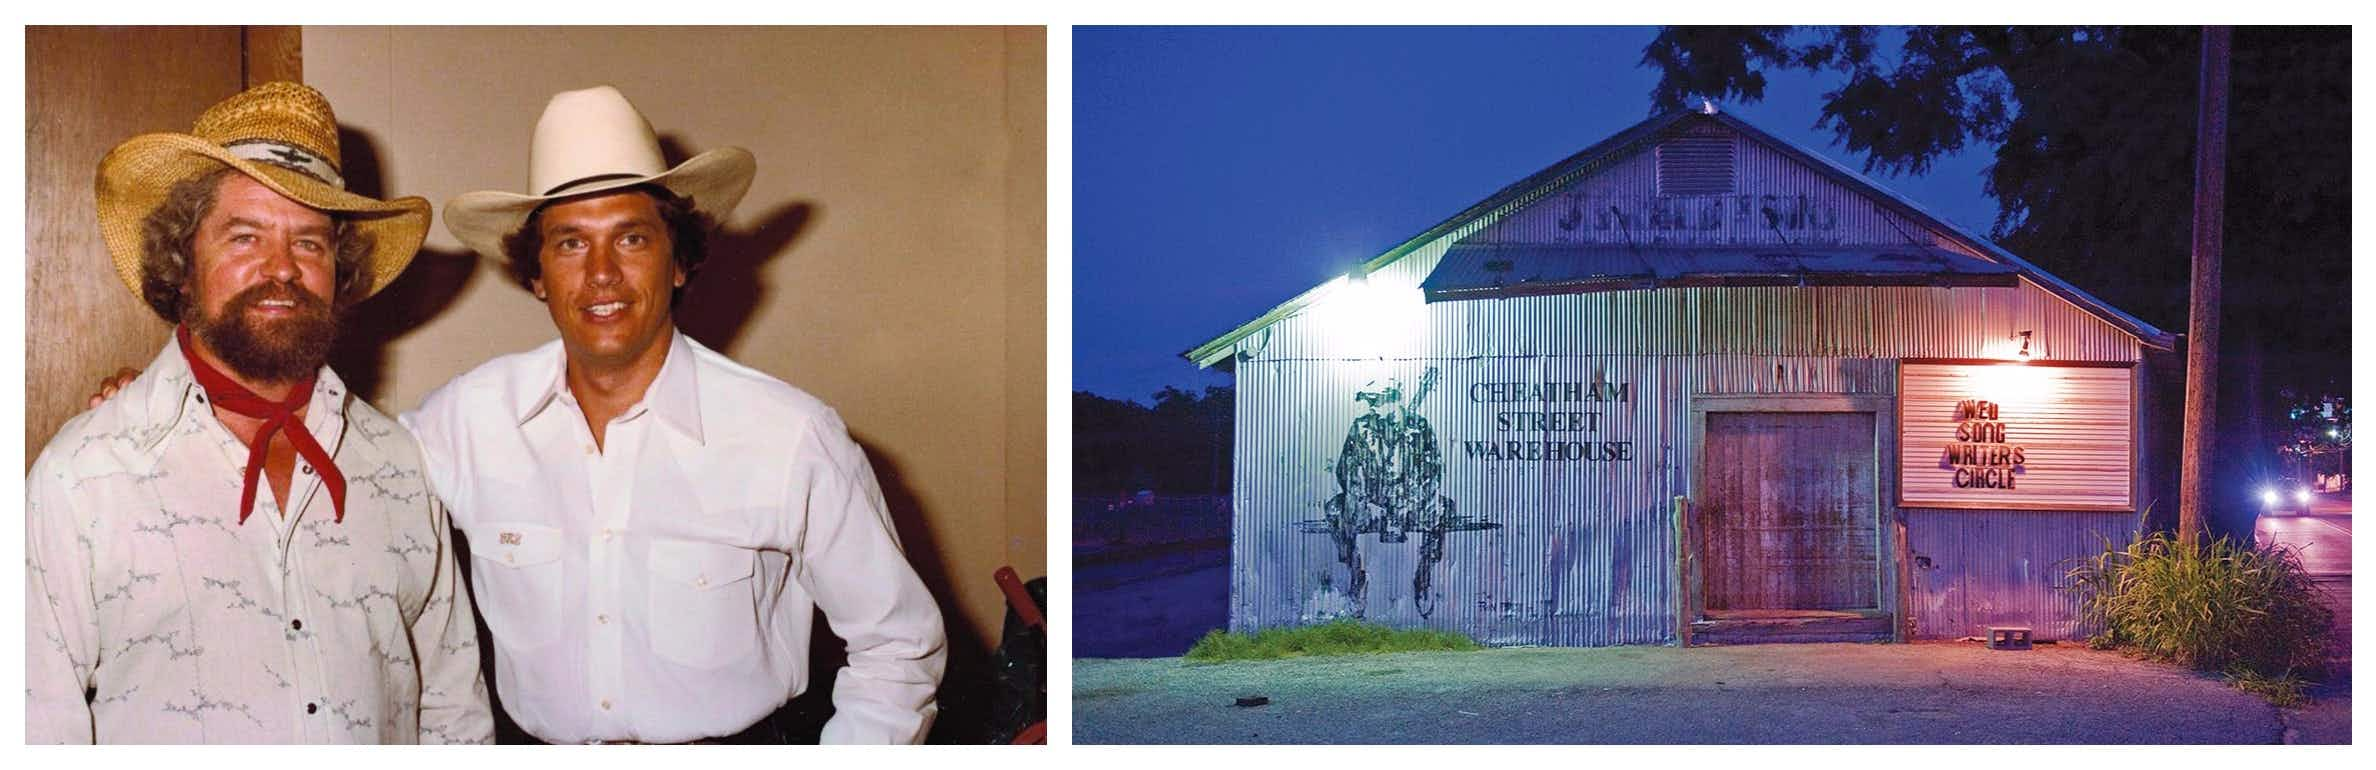 From left: Kent Finlay and George Strait in 1982. Cheatham Street Warehouse.